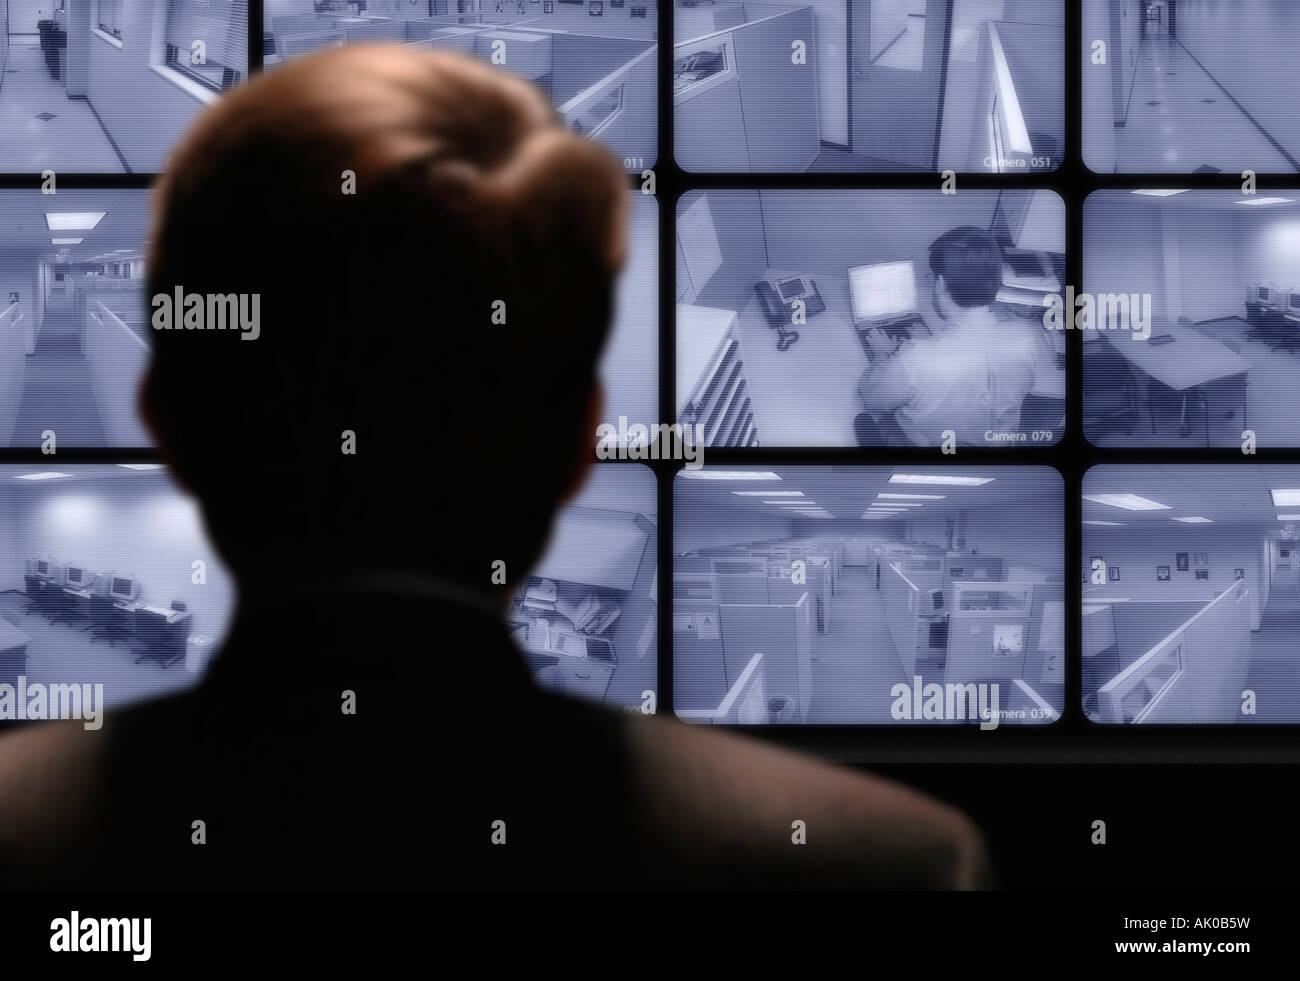 Video surveillance Man watching an employee work via a closed circuit video monitor - Stock Image